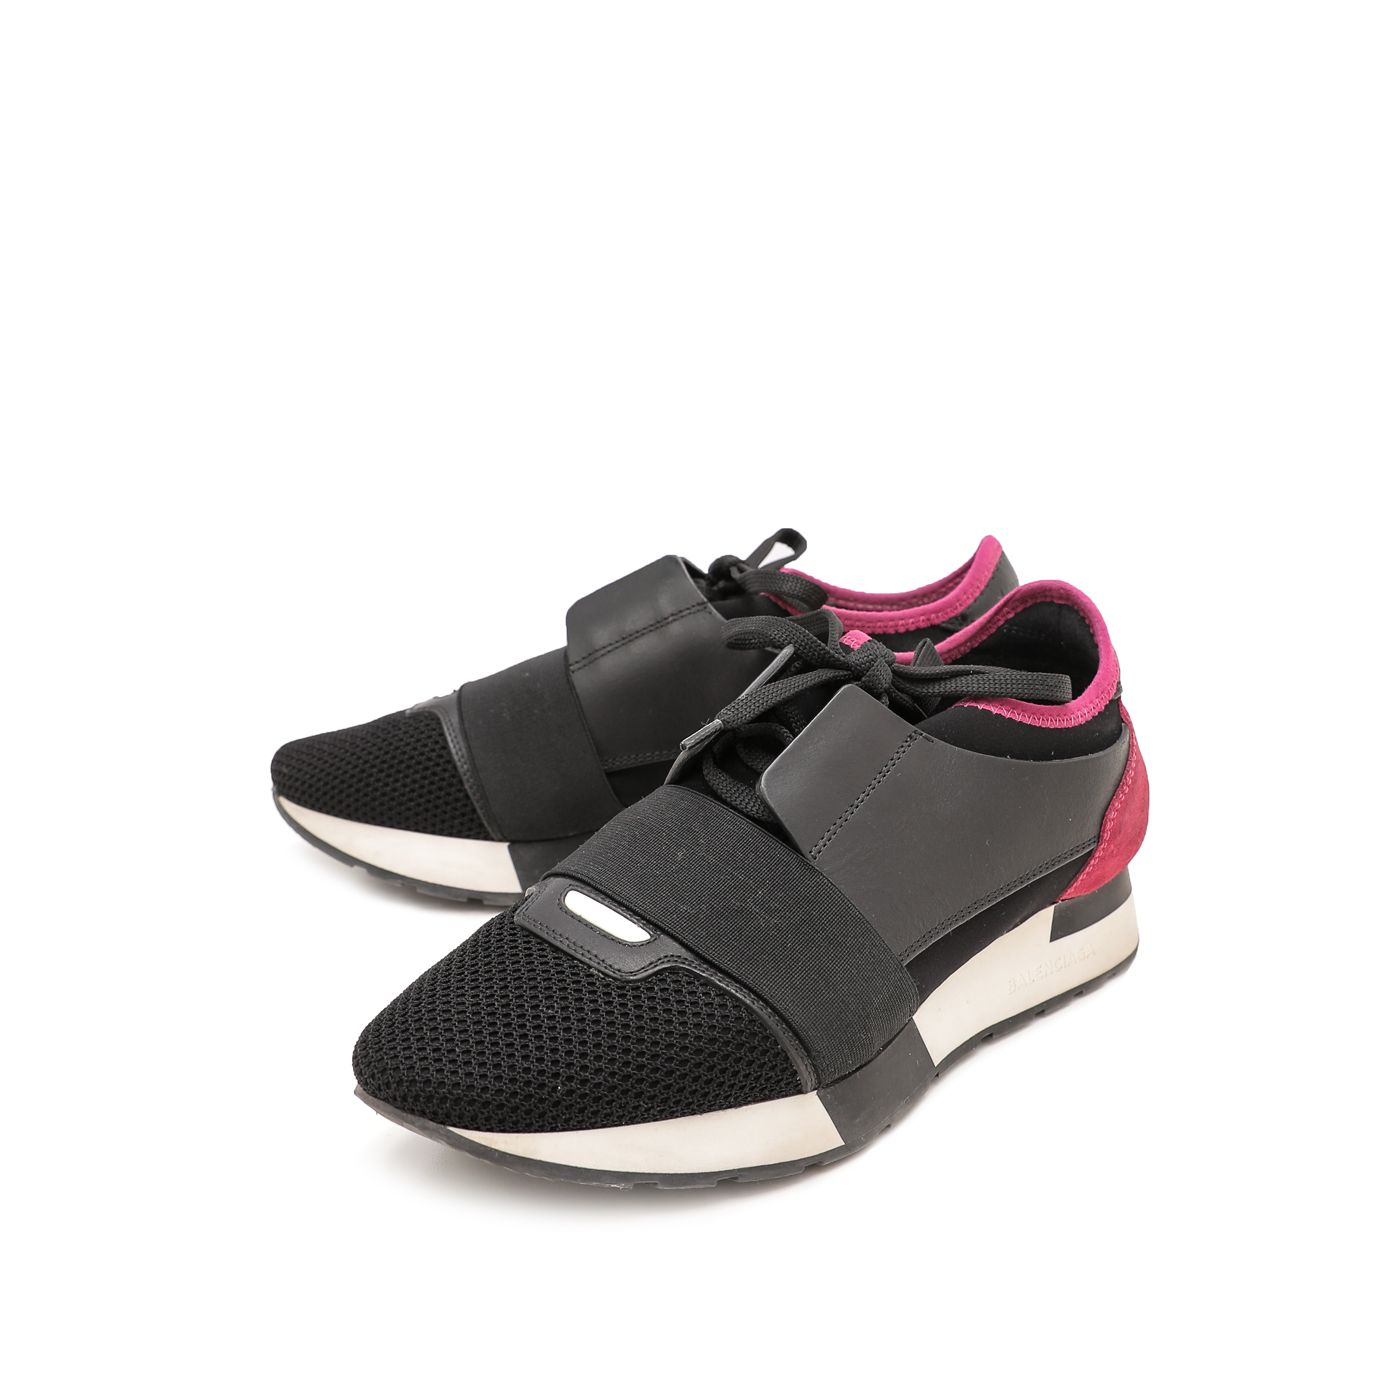 Balenciaga Bicolor Race Runner Sneakers 38